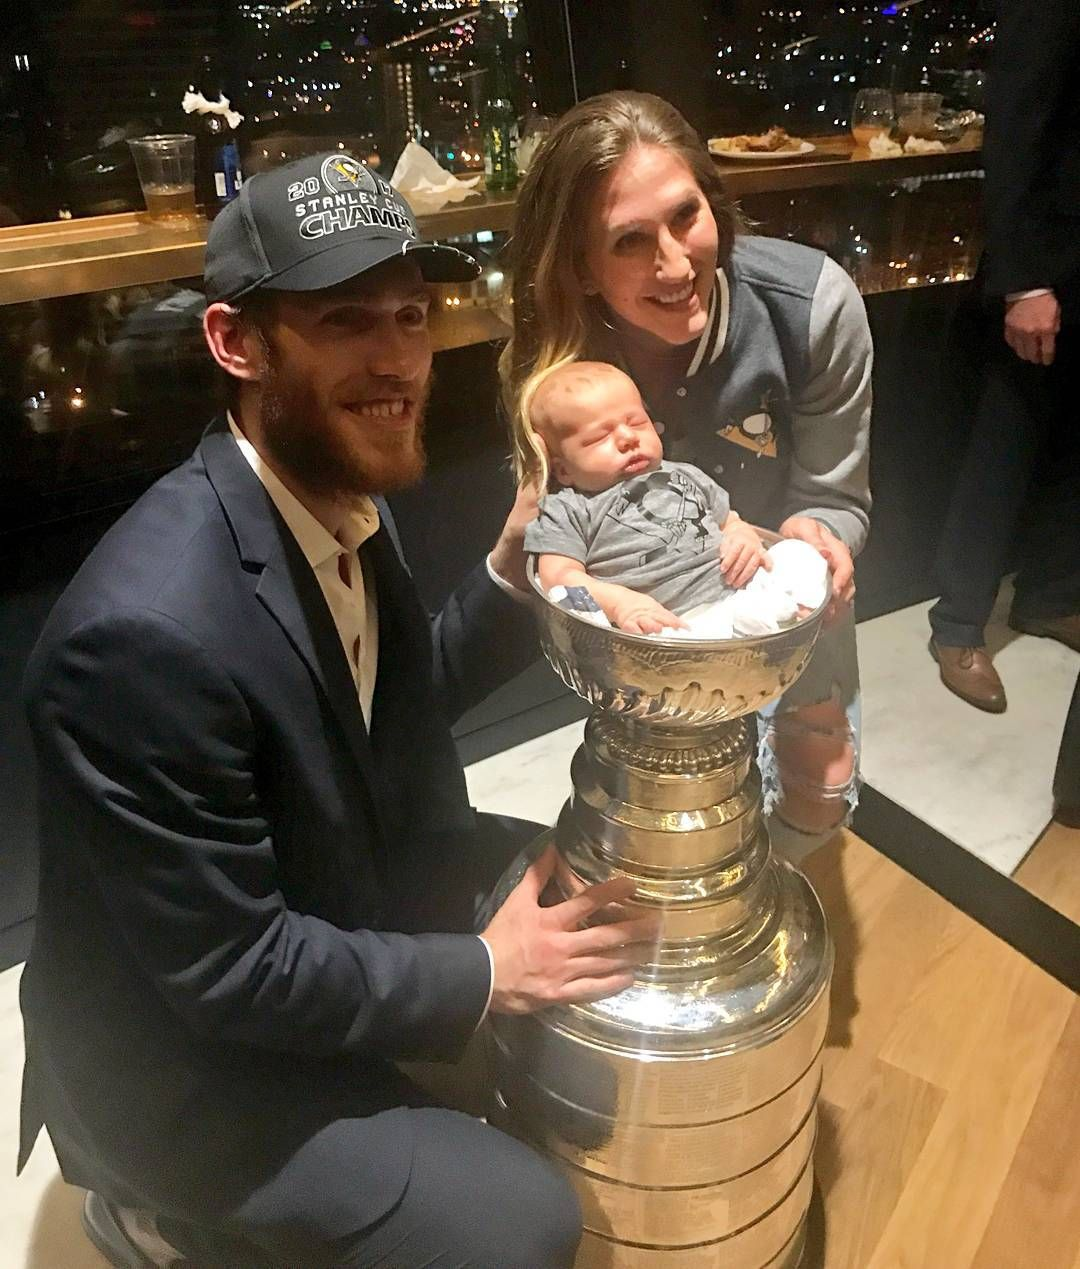 New baby and a Stanley Cup, quite a year for Carter Rowney ...